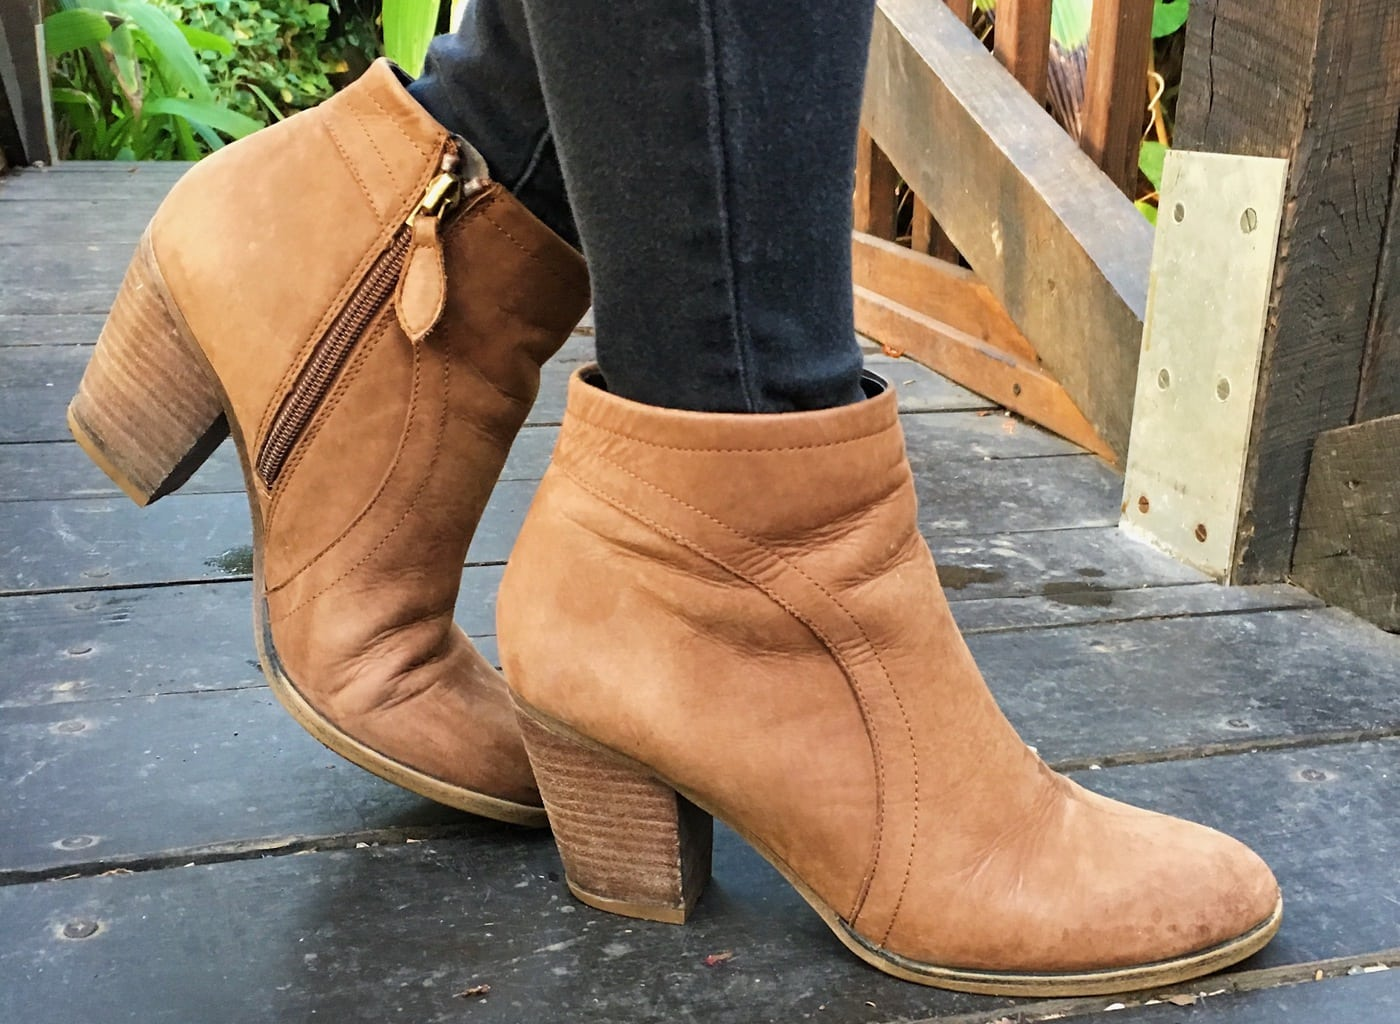 These chunky tan heeled booties are great for a stylish day at school.